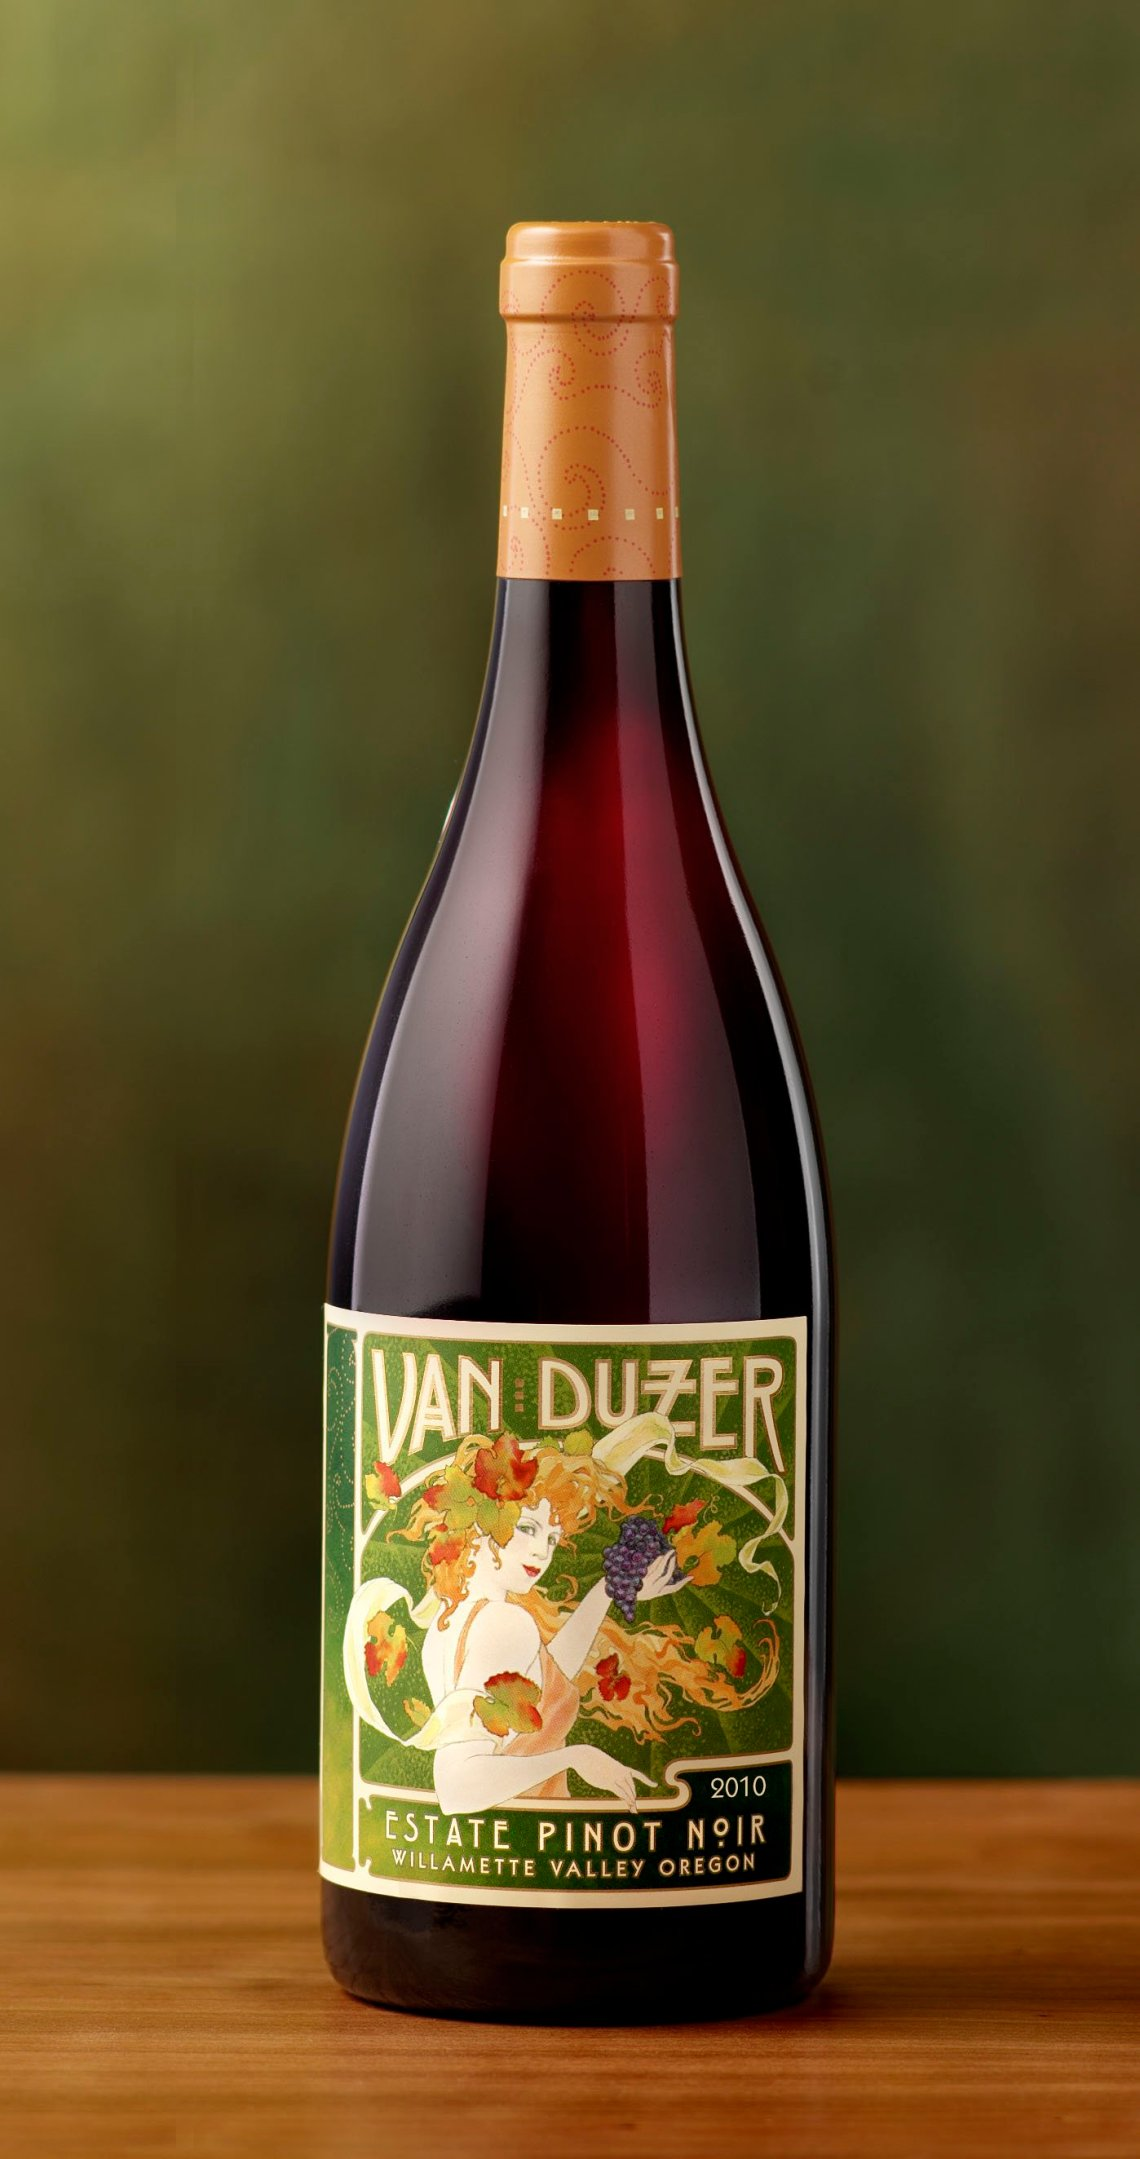 2010 Van Duzer Pinot Noir Estate Willamette Valley